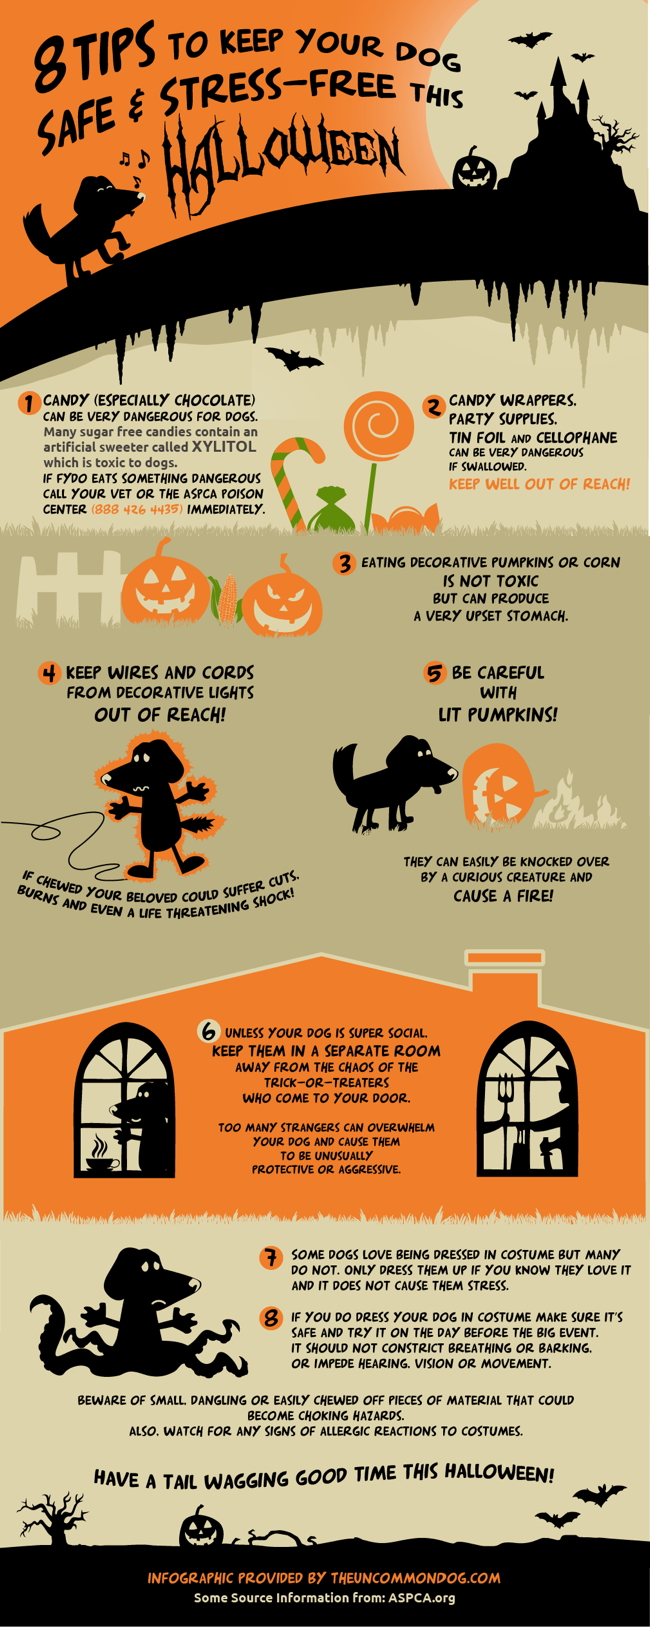 8 Tips to Keep Your Dog Safe & Stress Free this Halloween!